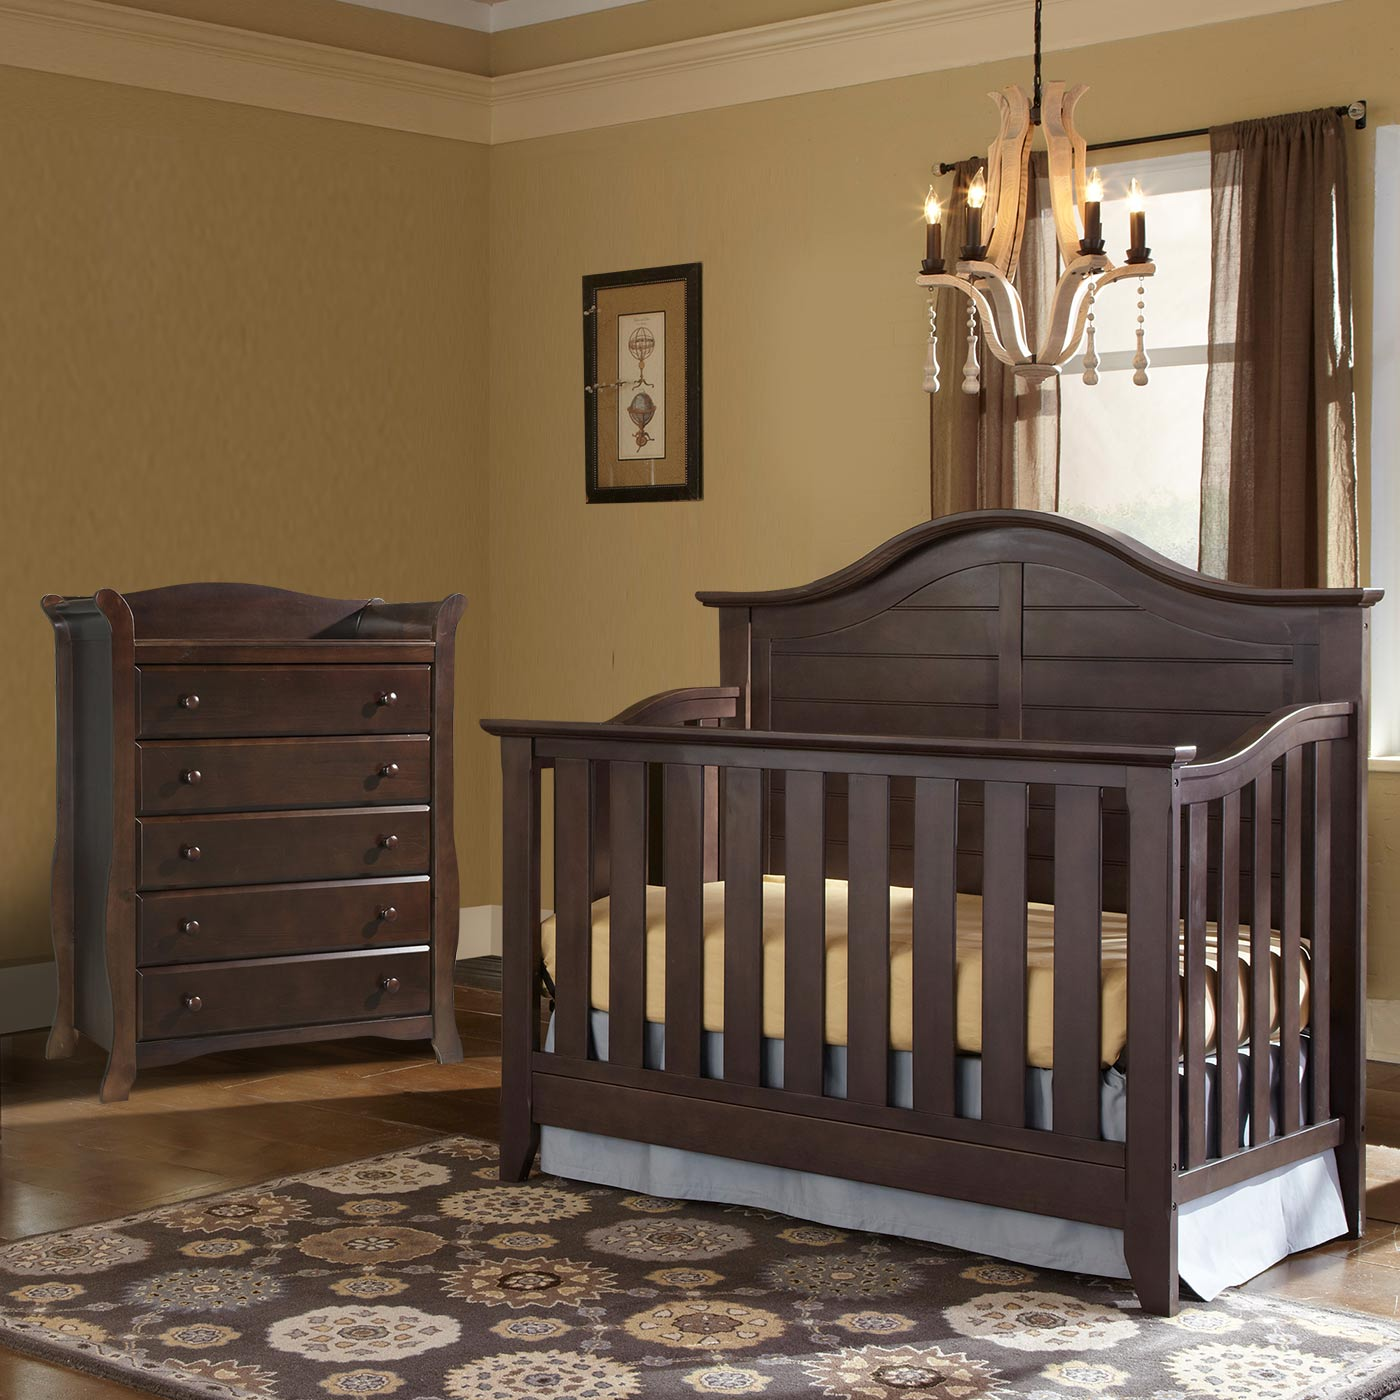 Thomasville 2 Piece Nursery Set Southern Dunes Lifestyle Crib And Avalon 5 Drawer Dresser In Espresso Free Shipping